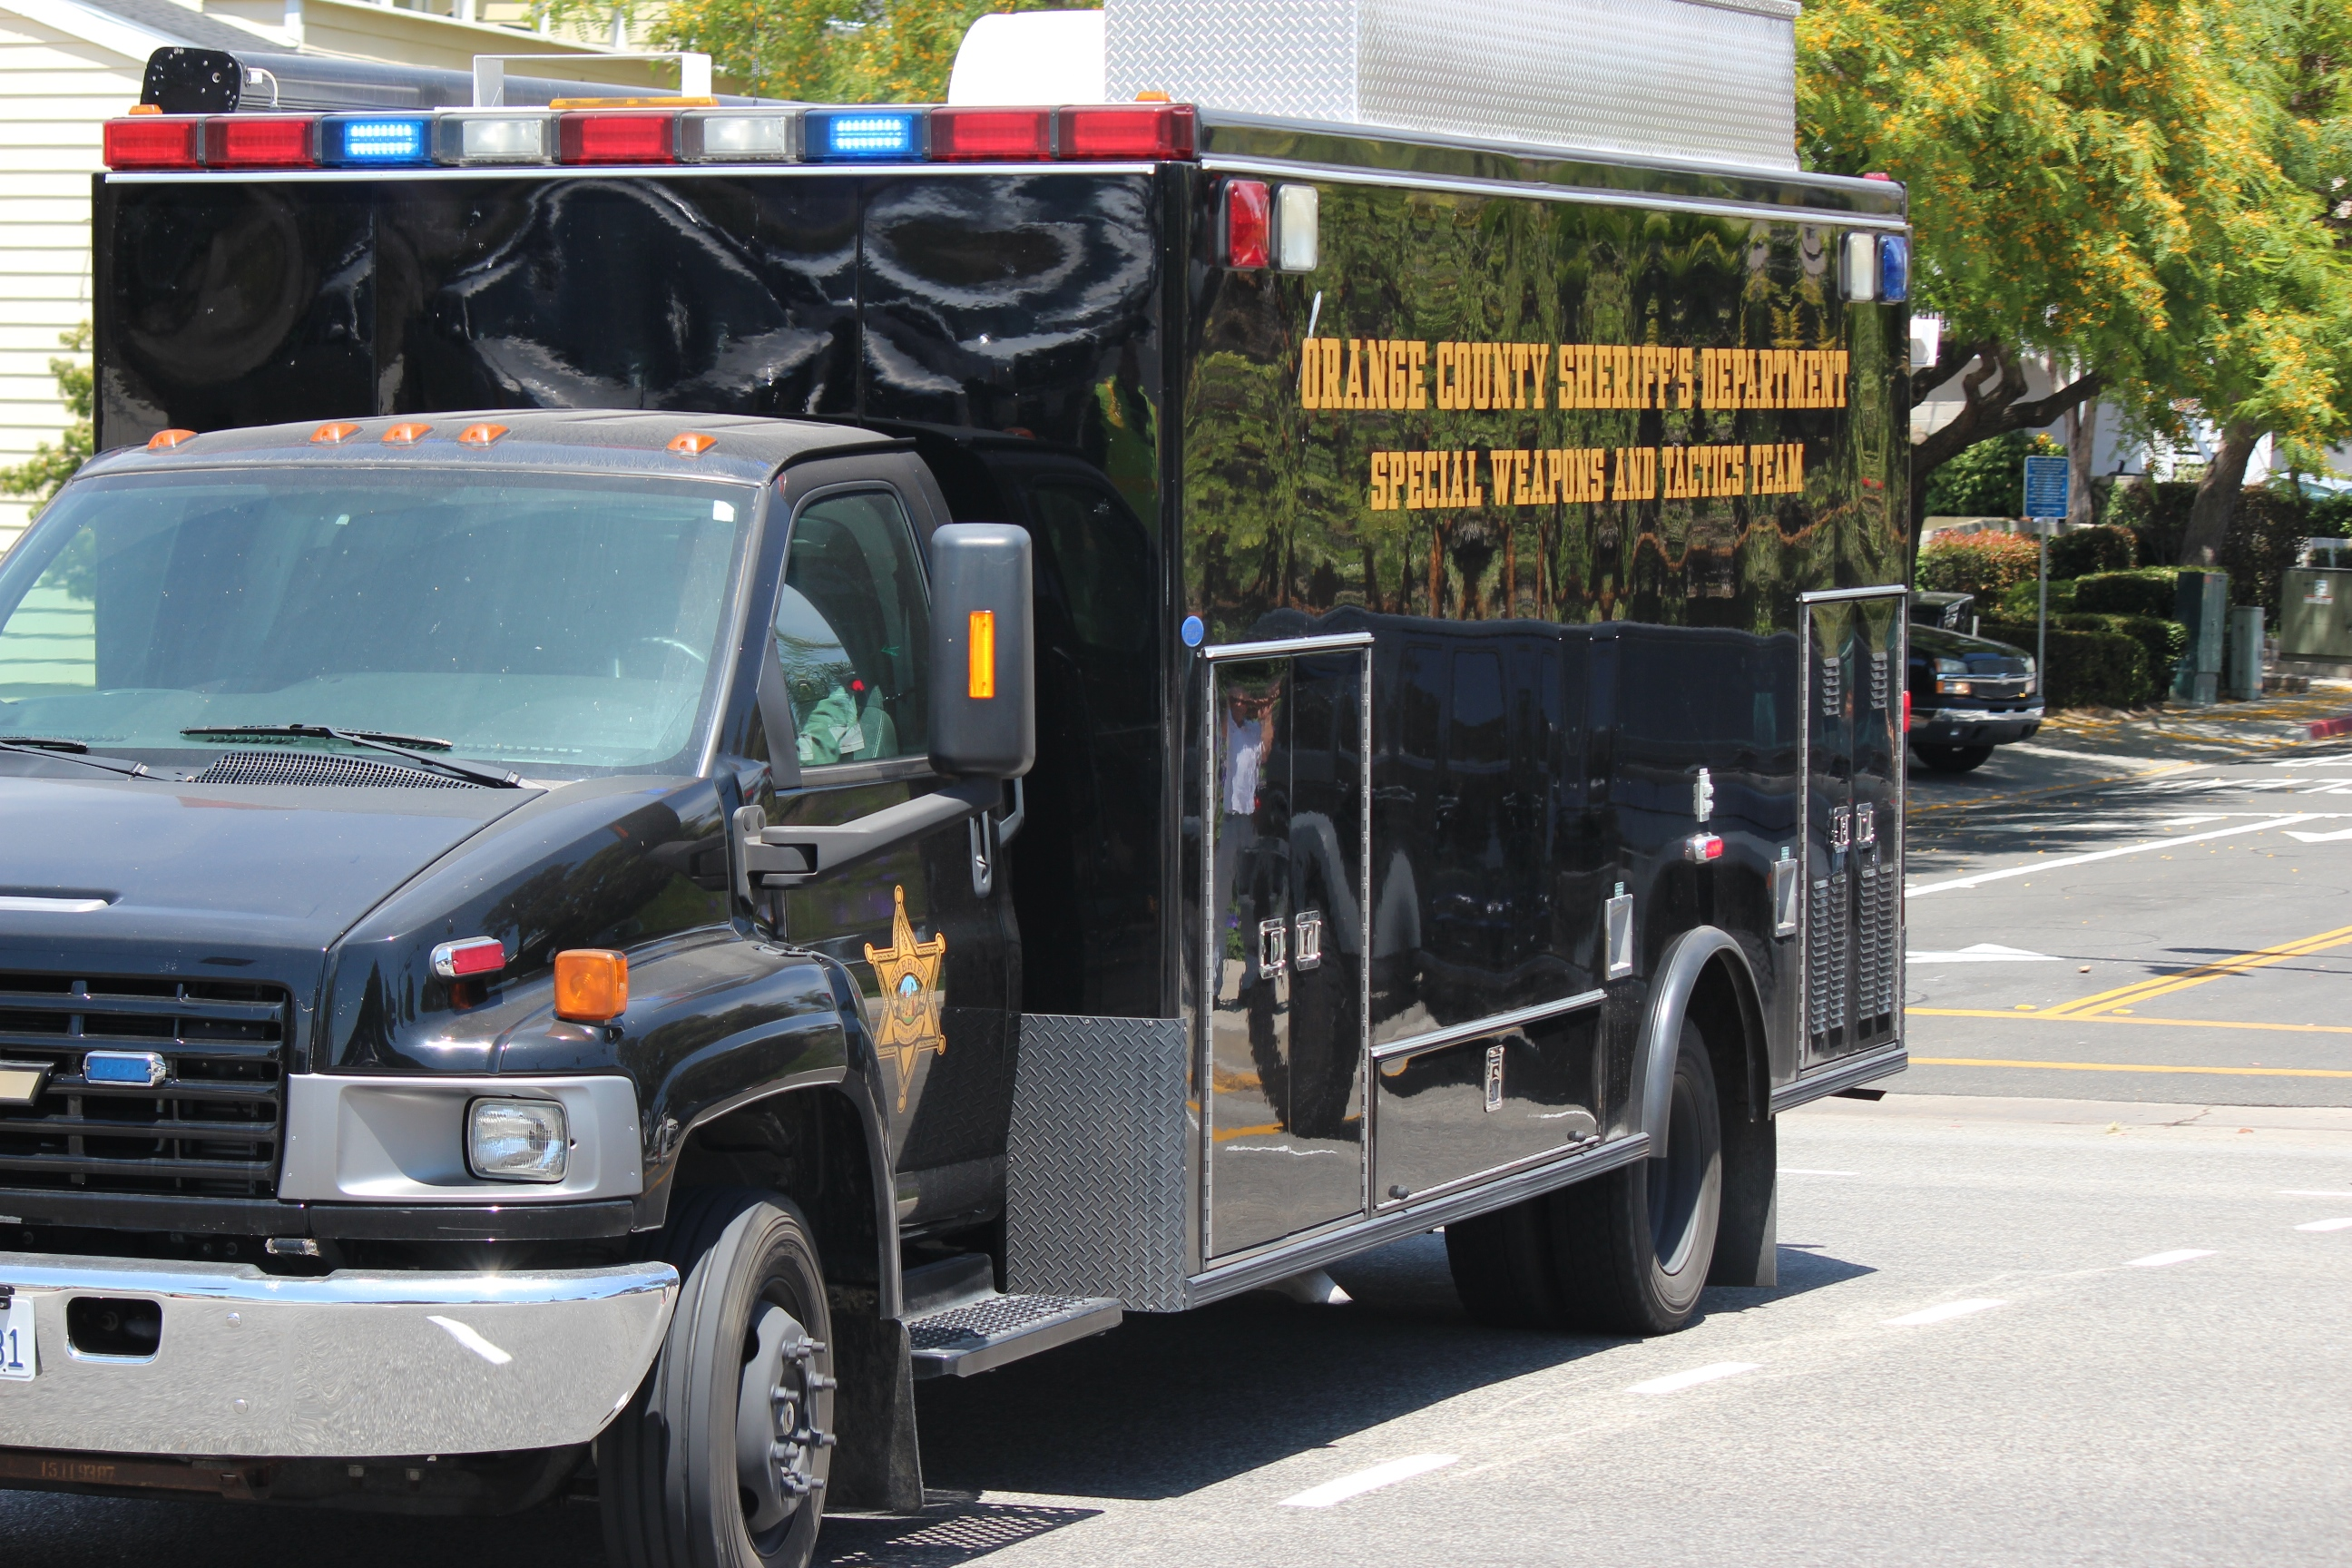 The Orange County Sheriff's Department SWAT team responded to a lockdown of Dana Hills High School Thursday after an empty gun case was found on campus. Photo: Jim Shilander